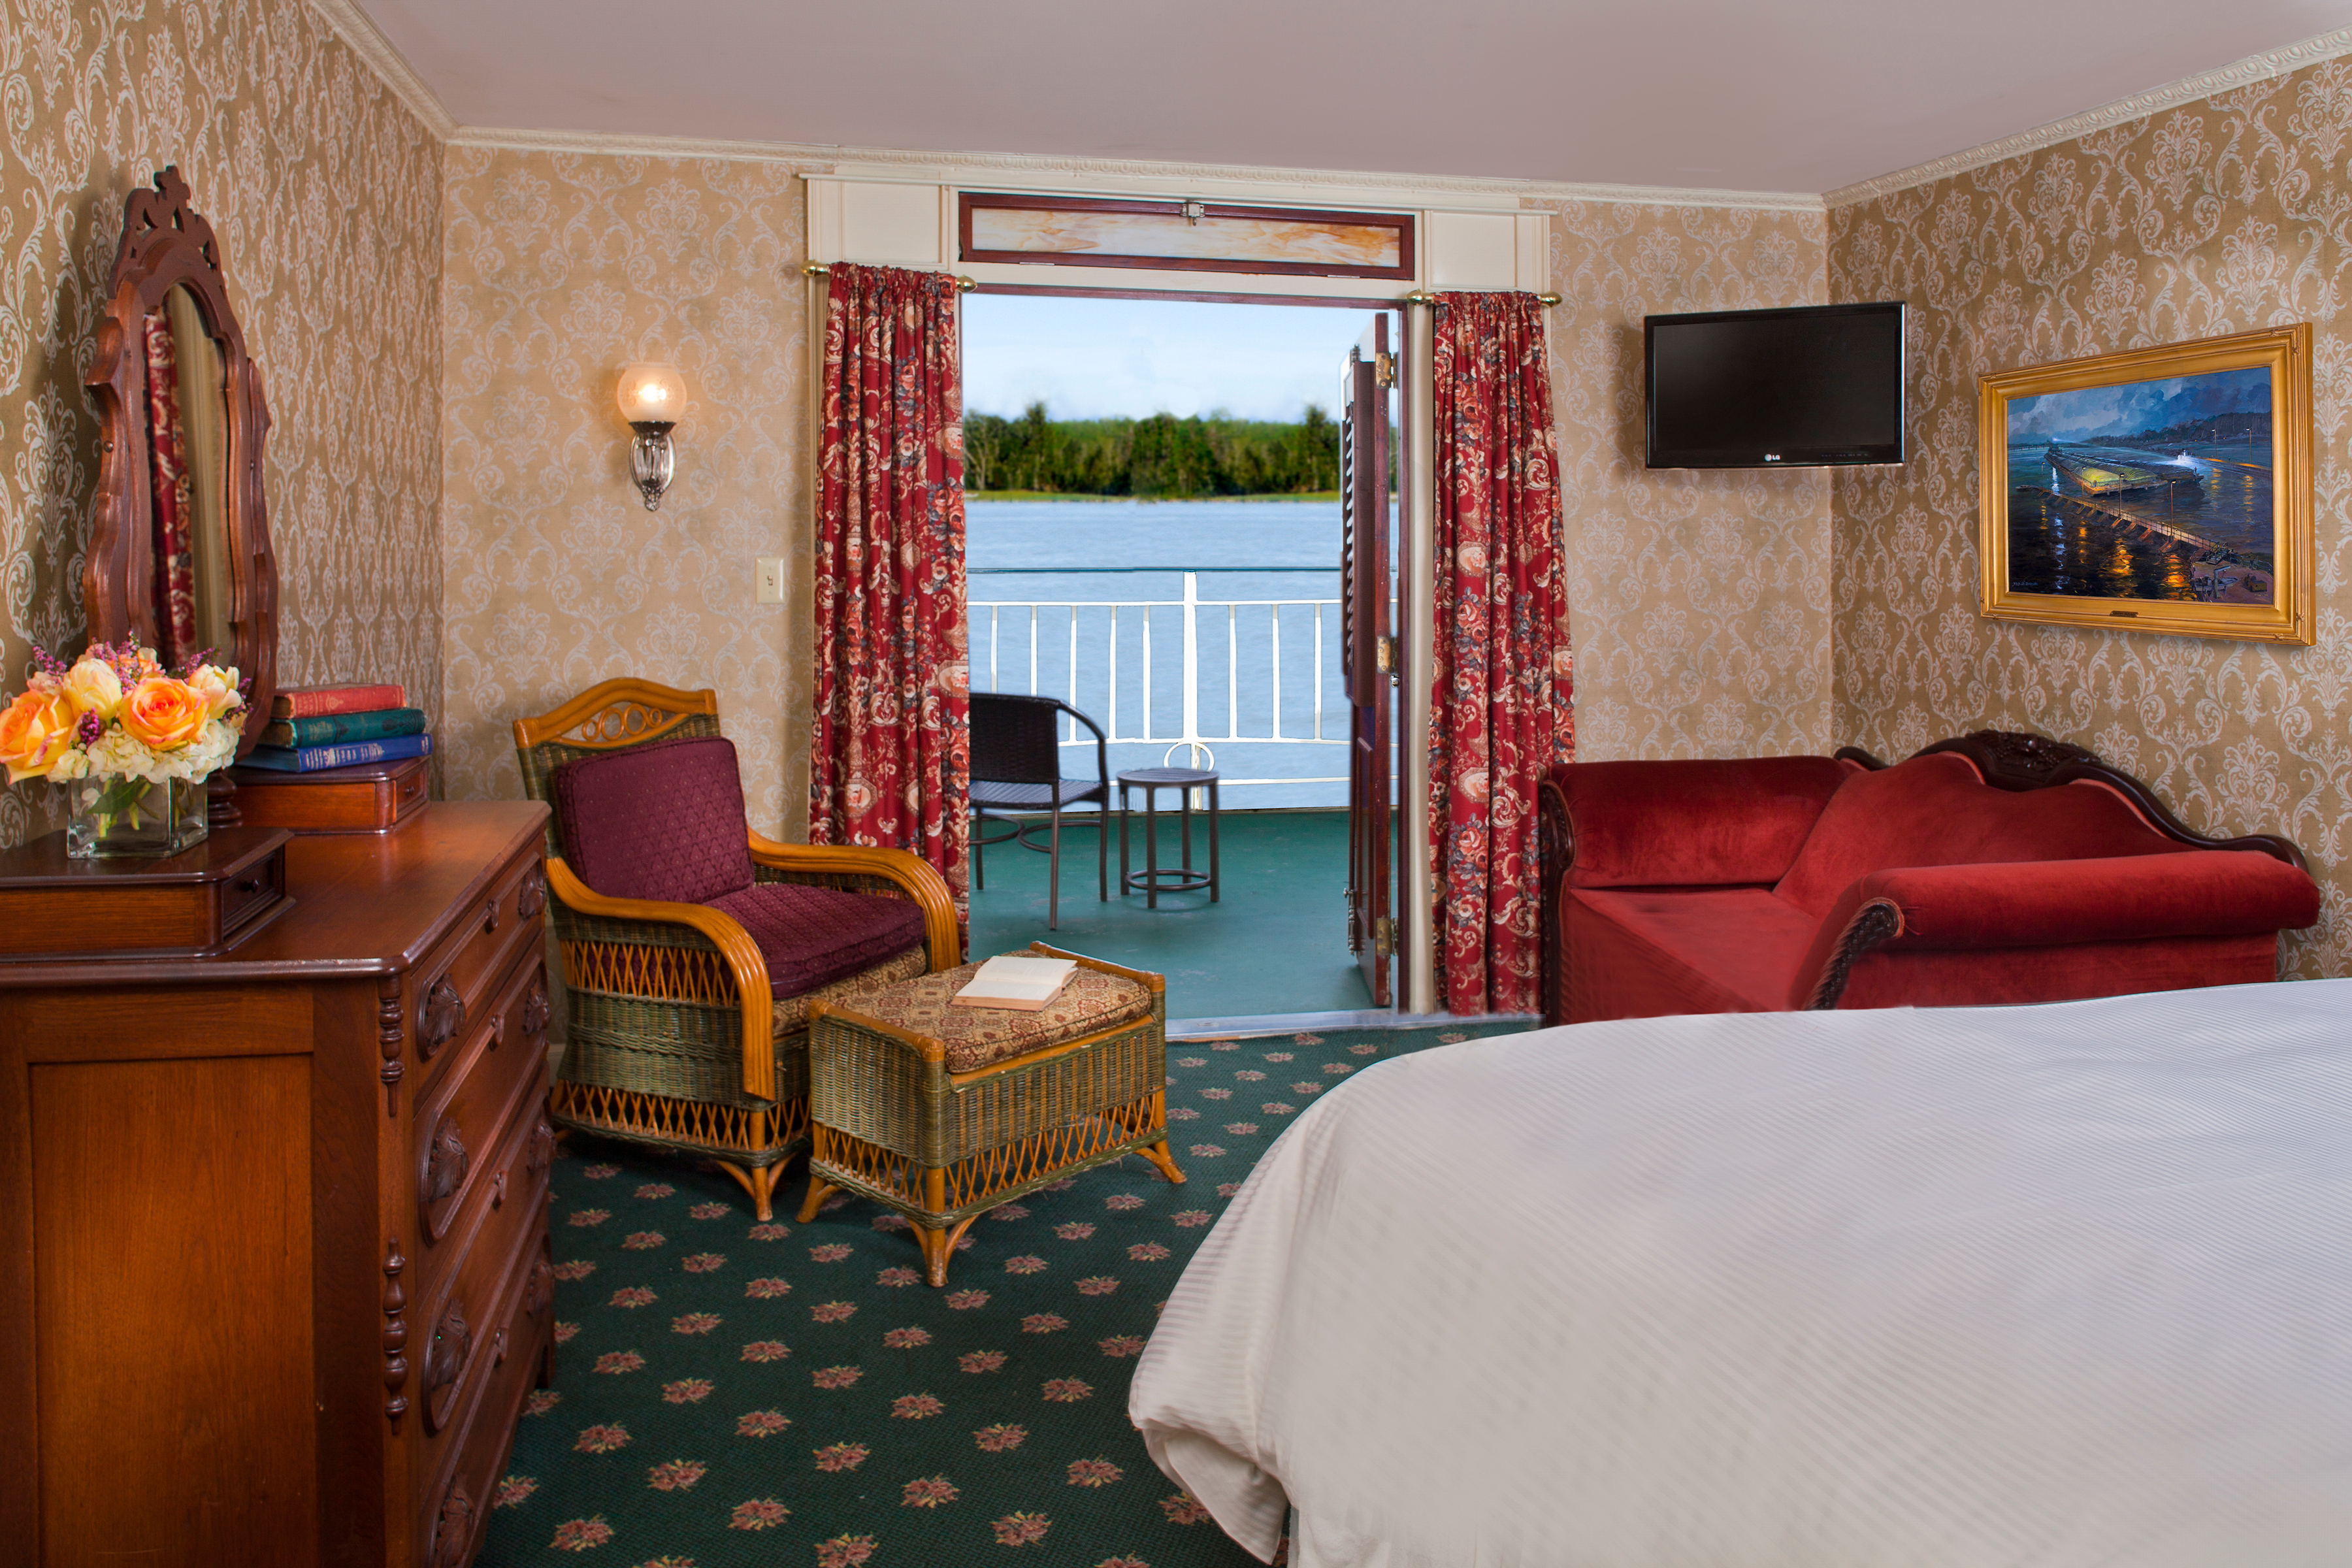 American Queen Steamboat Company American Queen Accommodation Deluxe Outside Stateroom with Veranda.jpg